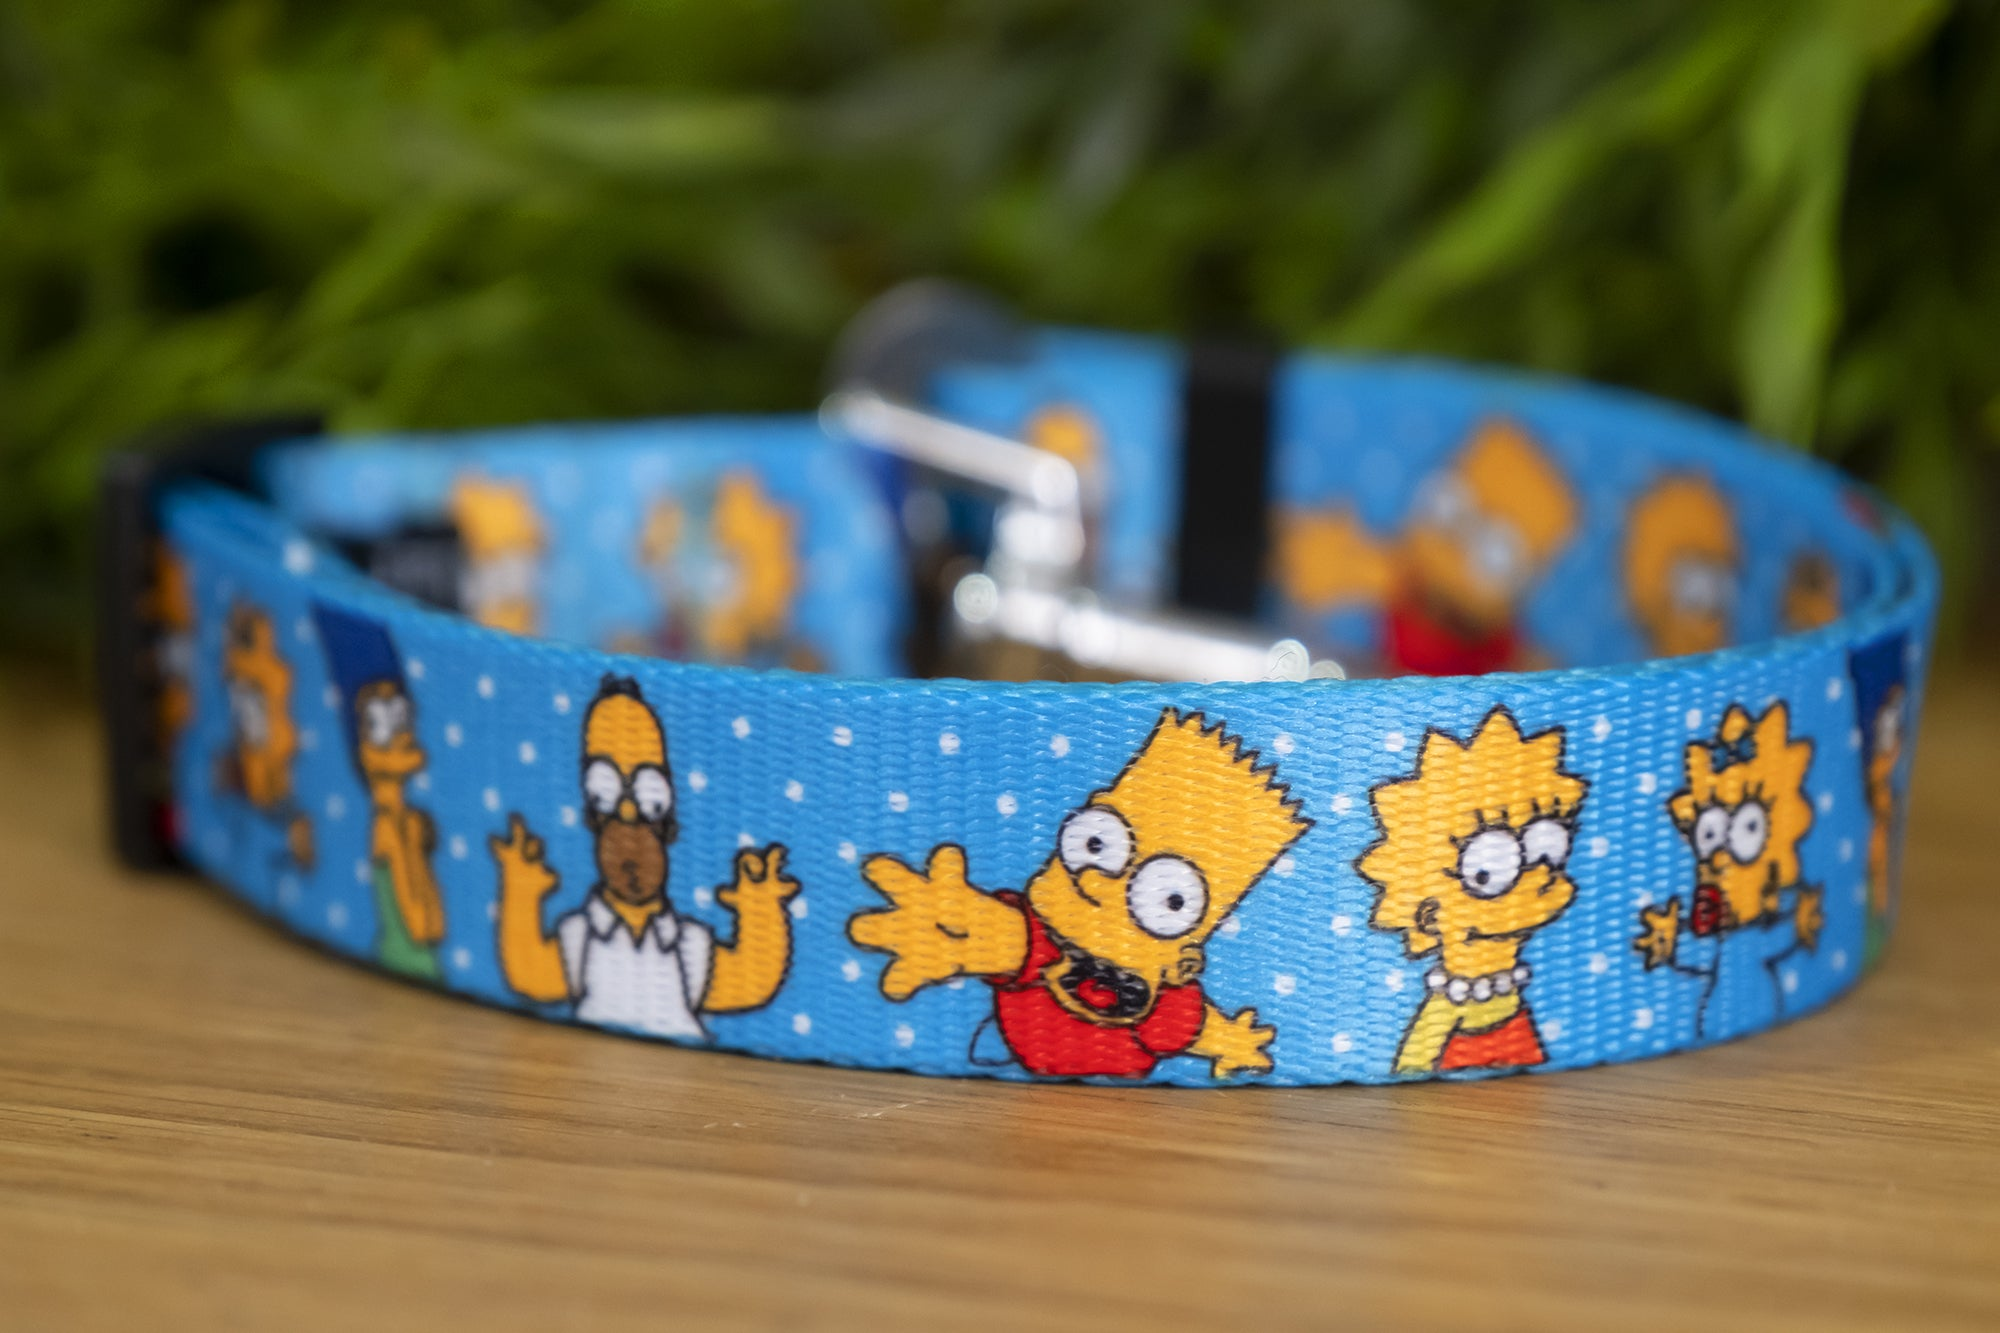 Dog Car Seatbelt / Dog Car Restraint Tether - The Simpsons (Handmade to order)-Dizzy Dog Collars